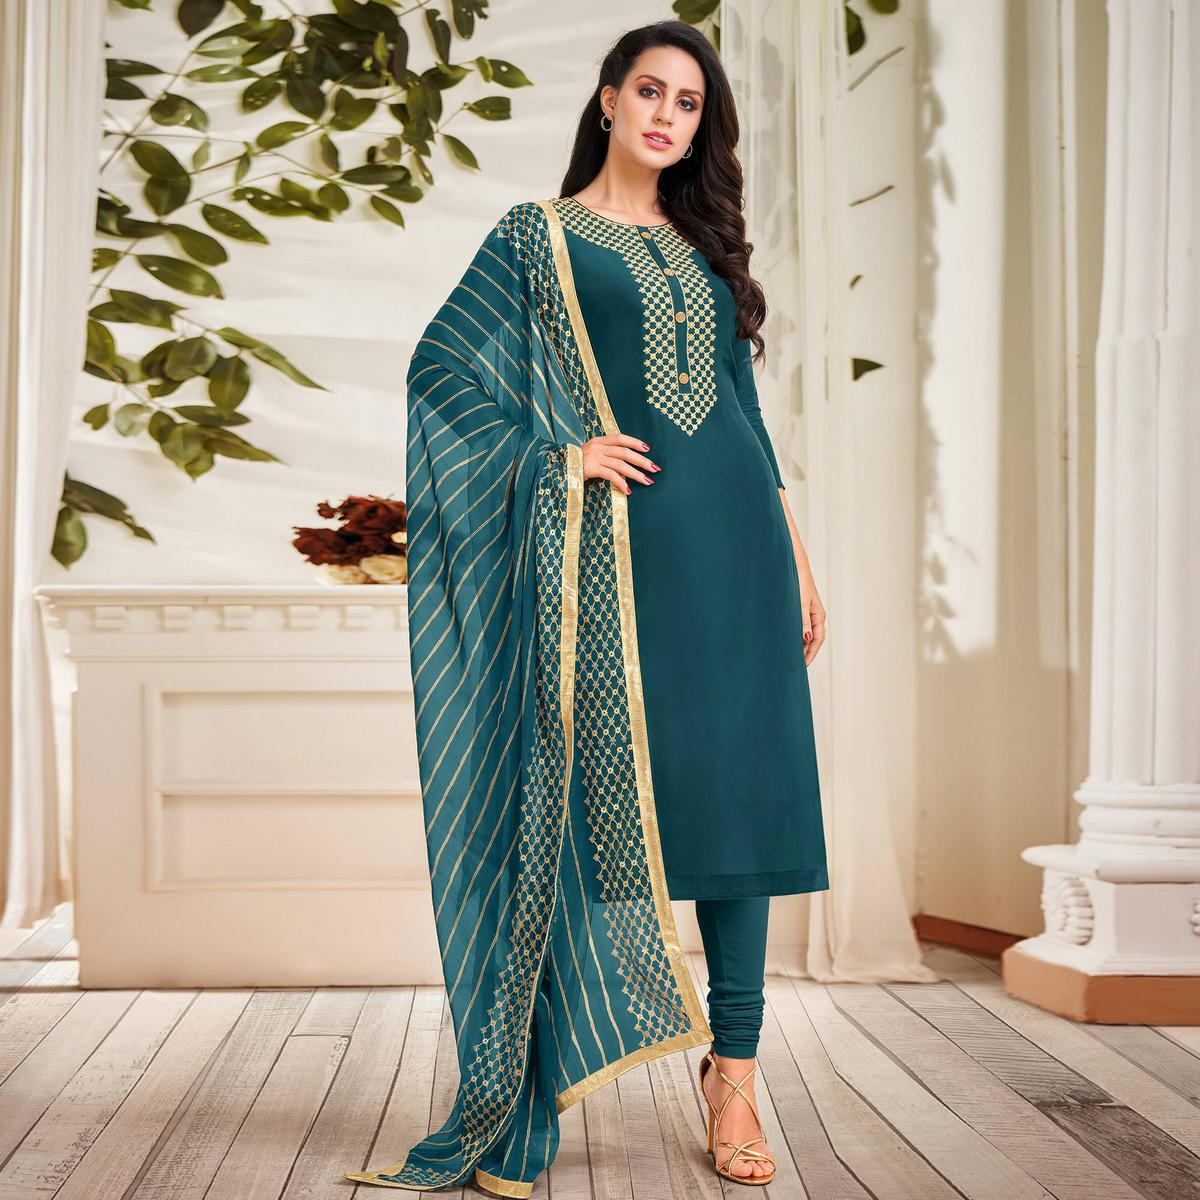 Pleasance Teal Blue Colored Partywear Embroidered Chanderi Dress Material